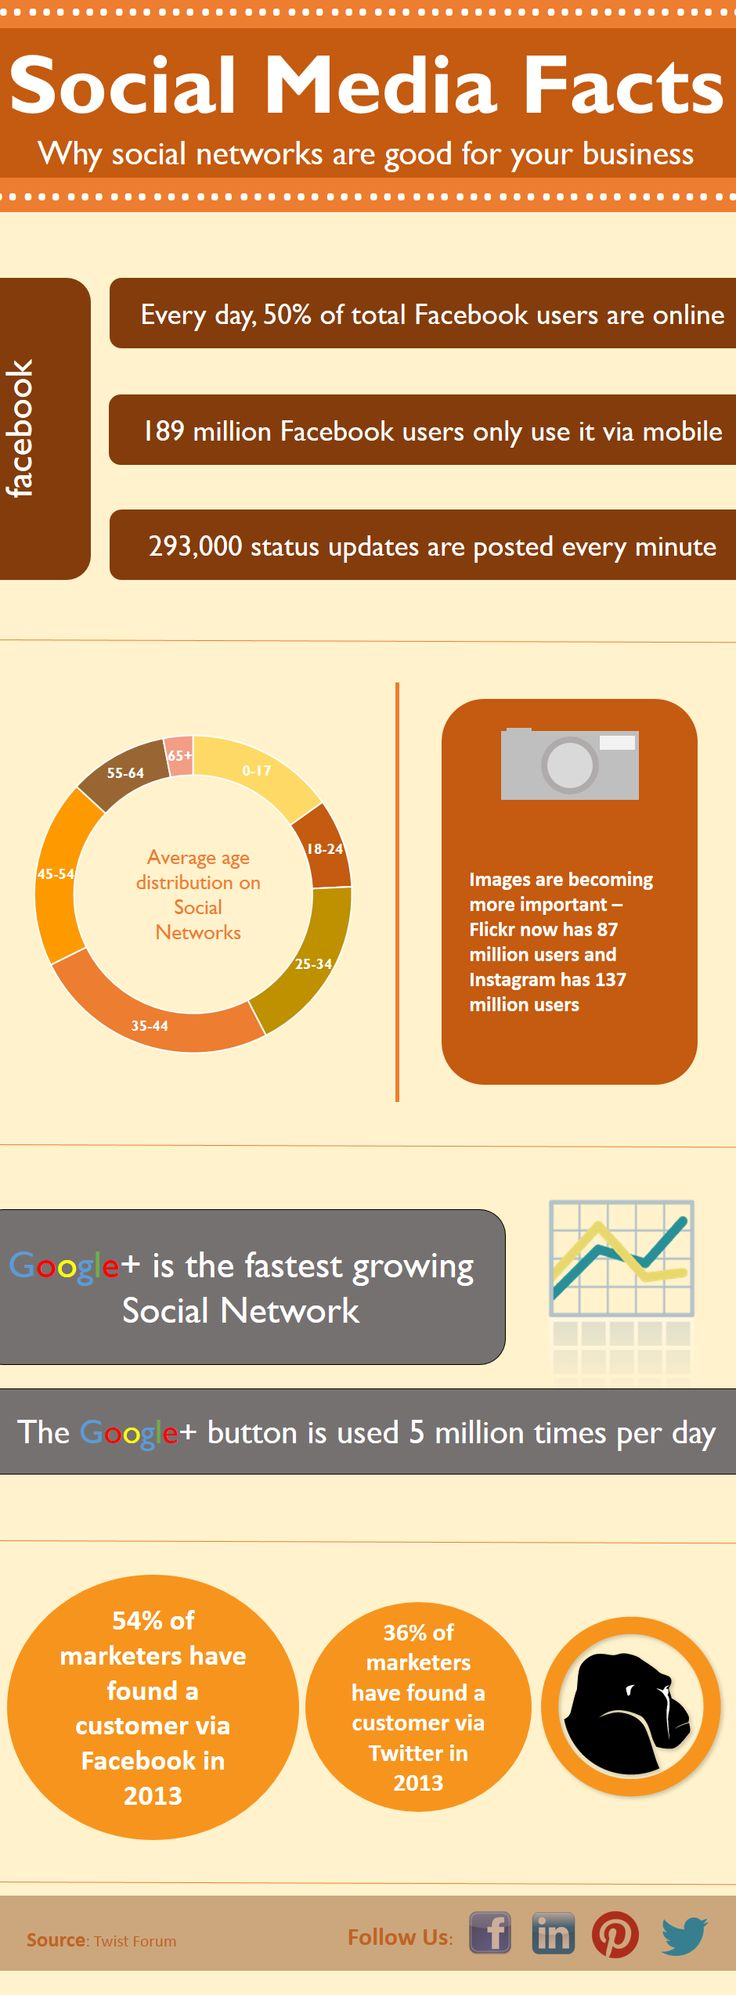 2013 social media facts - why social networks are good for your business. #FridayFacts #Infographic